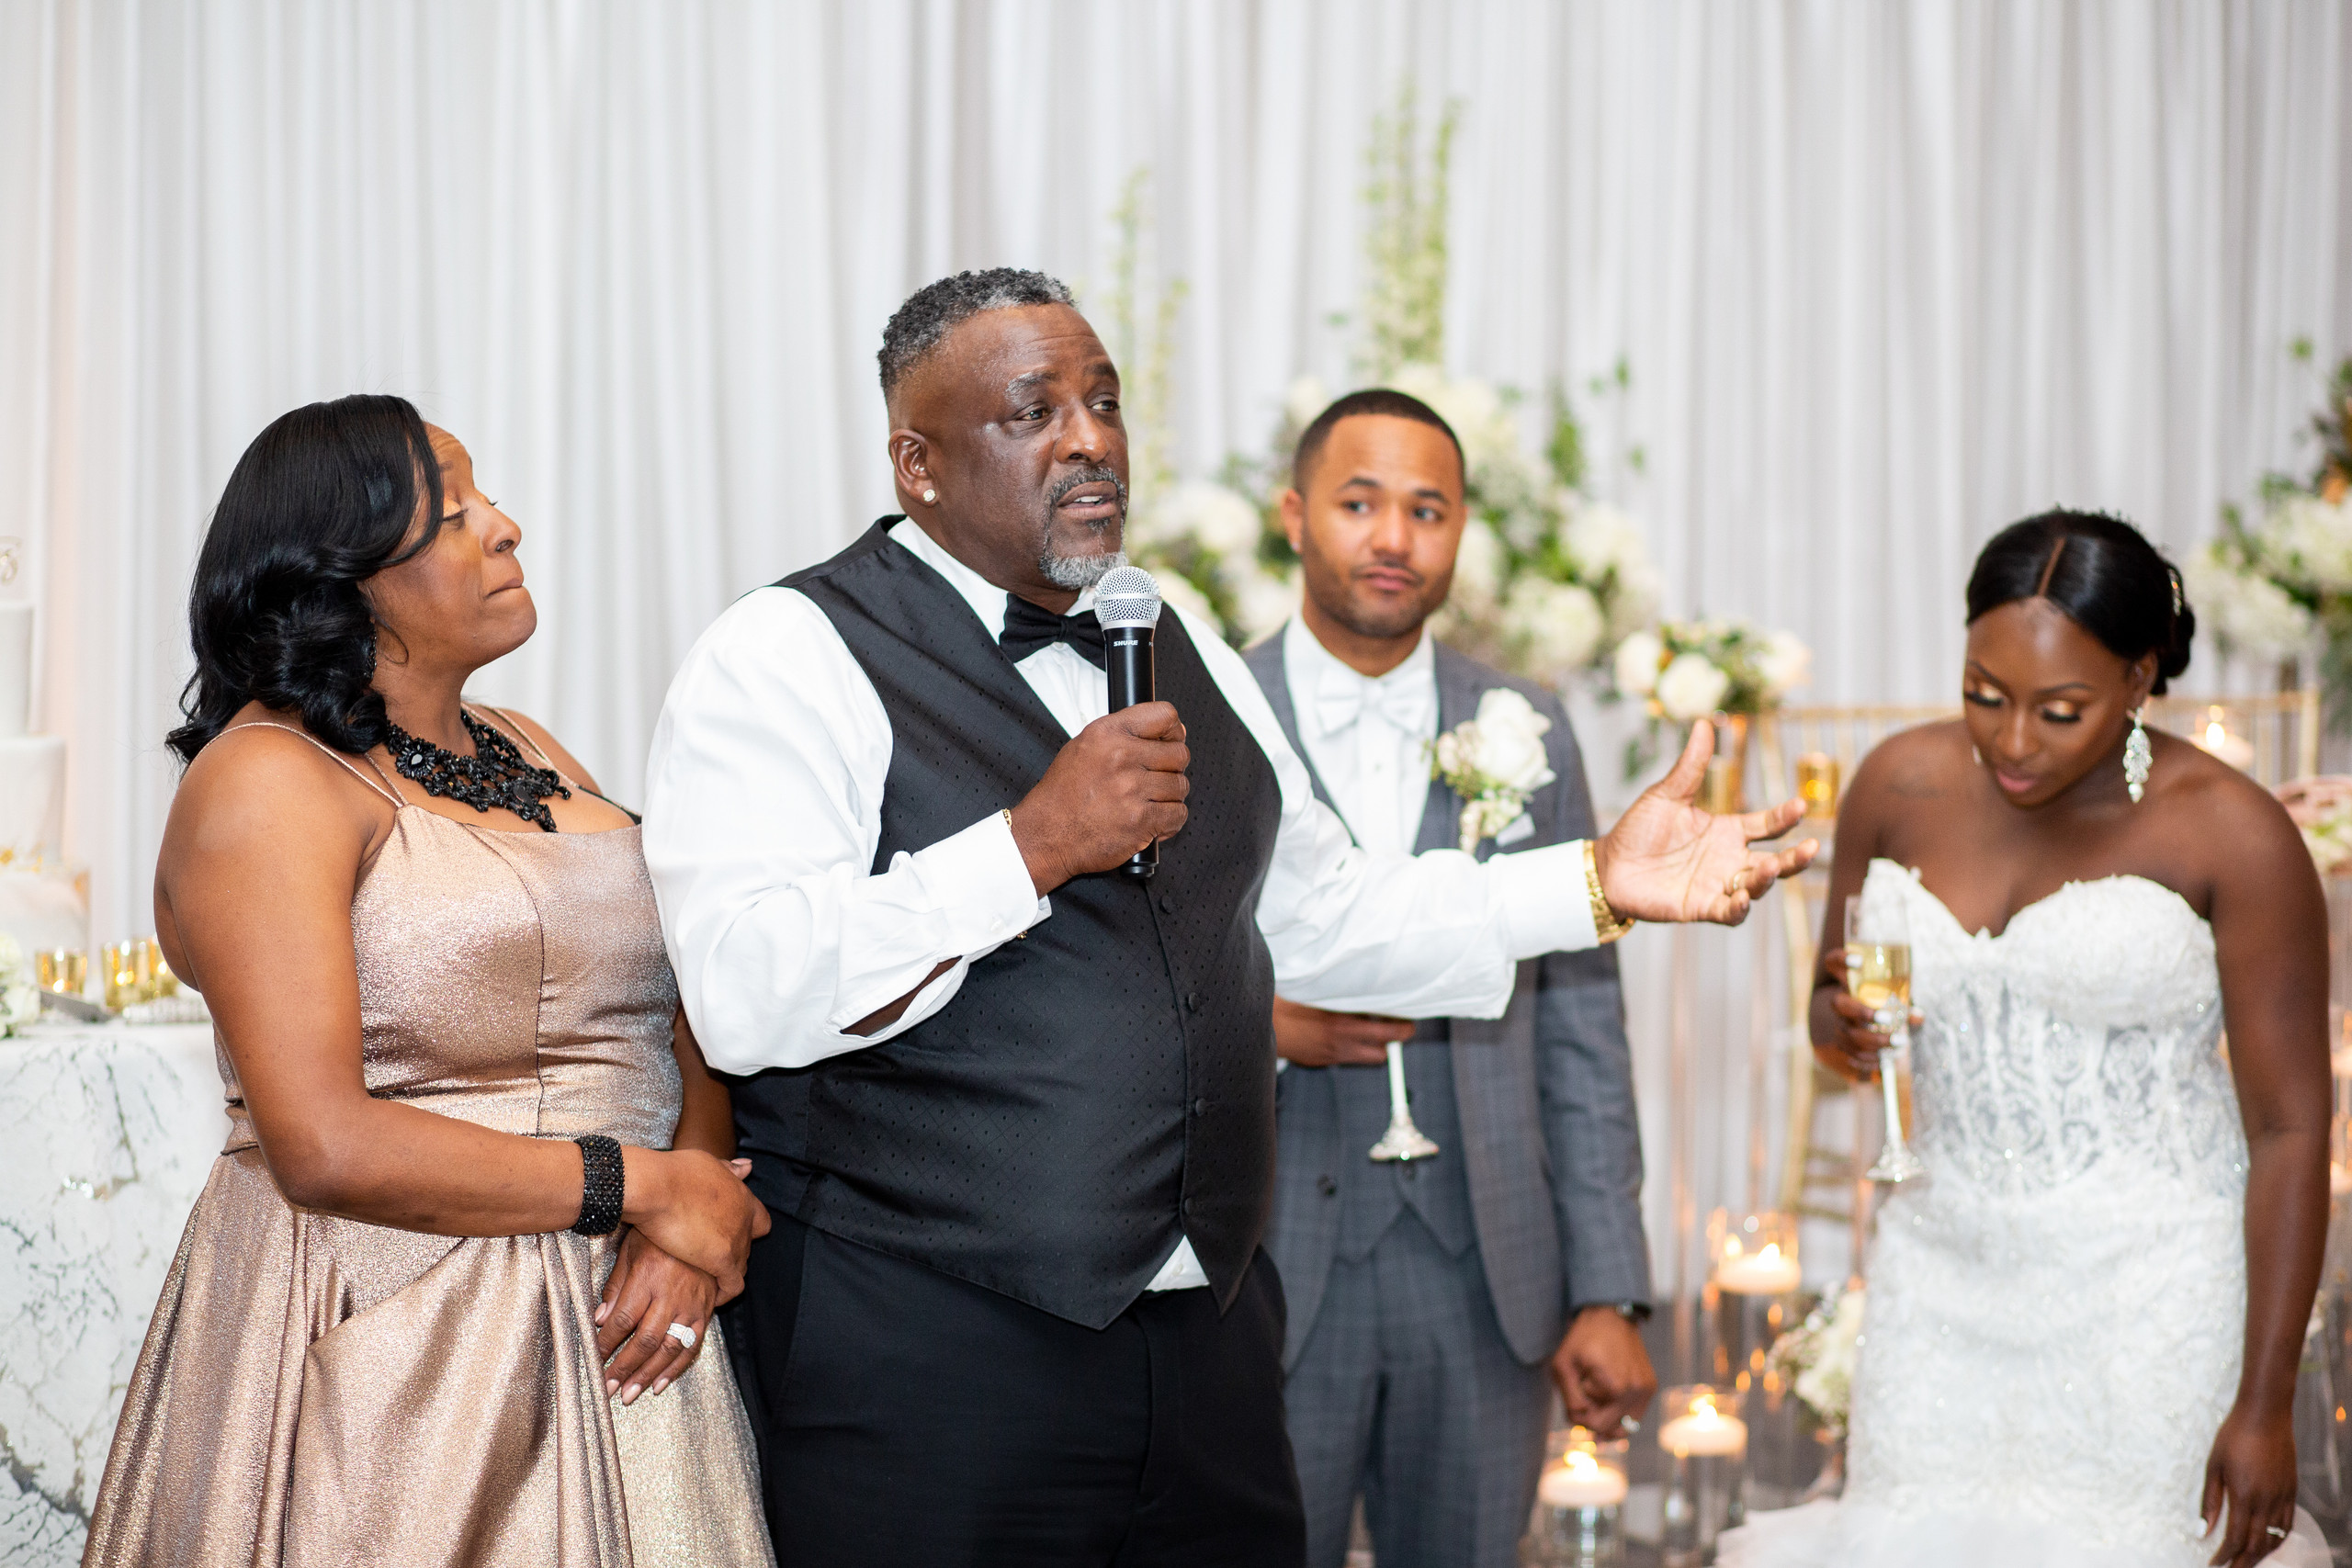 The parents of the bride welcome their new son-in-law with a toast during the wedding reception at the Hilton Main in Norfolk, Virginia.